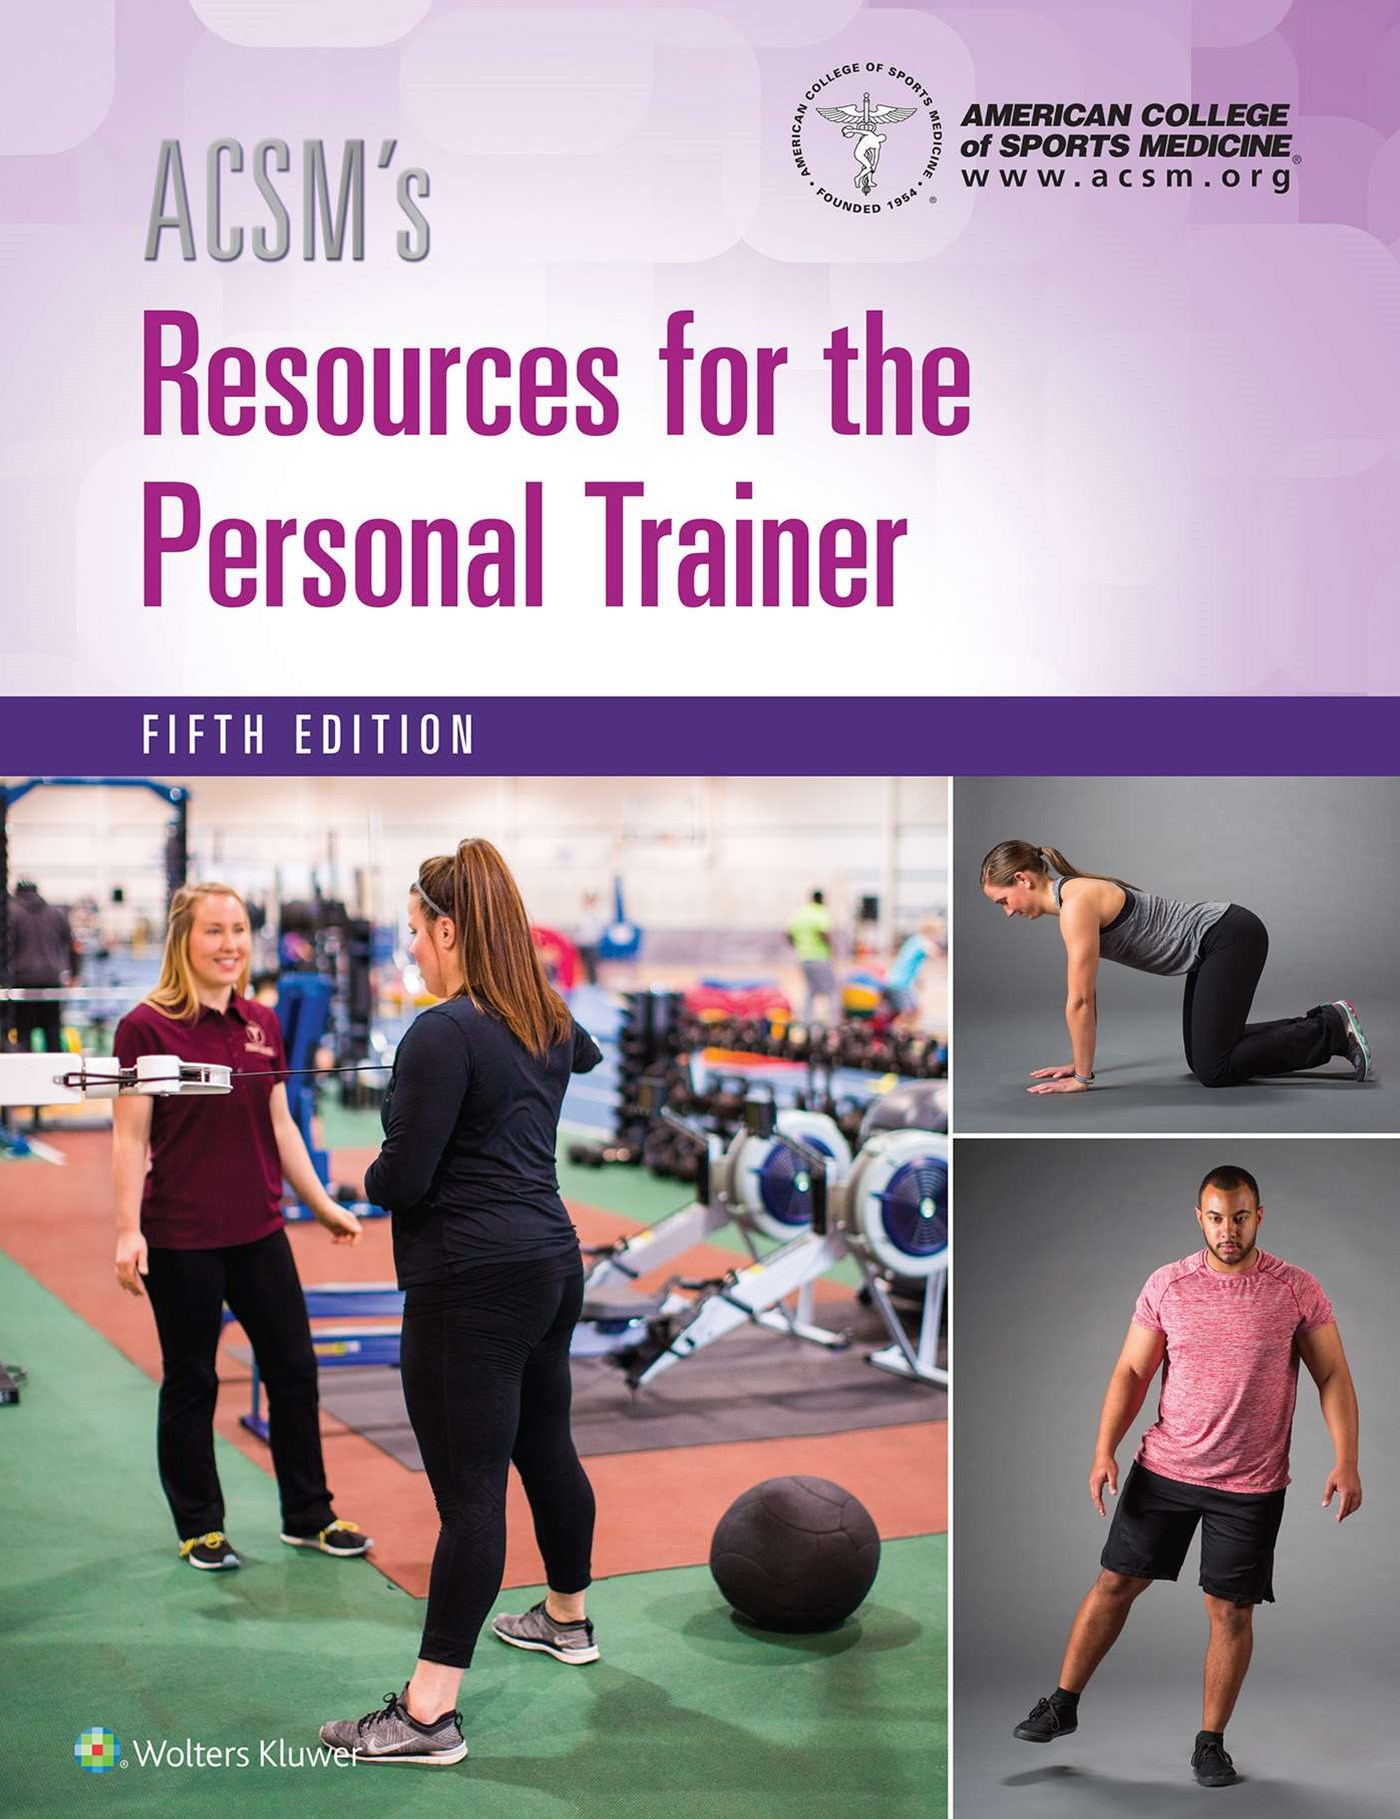 ACMS's Resources for the Personal Trainer